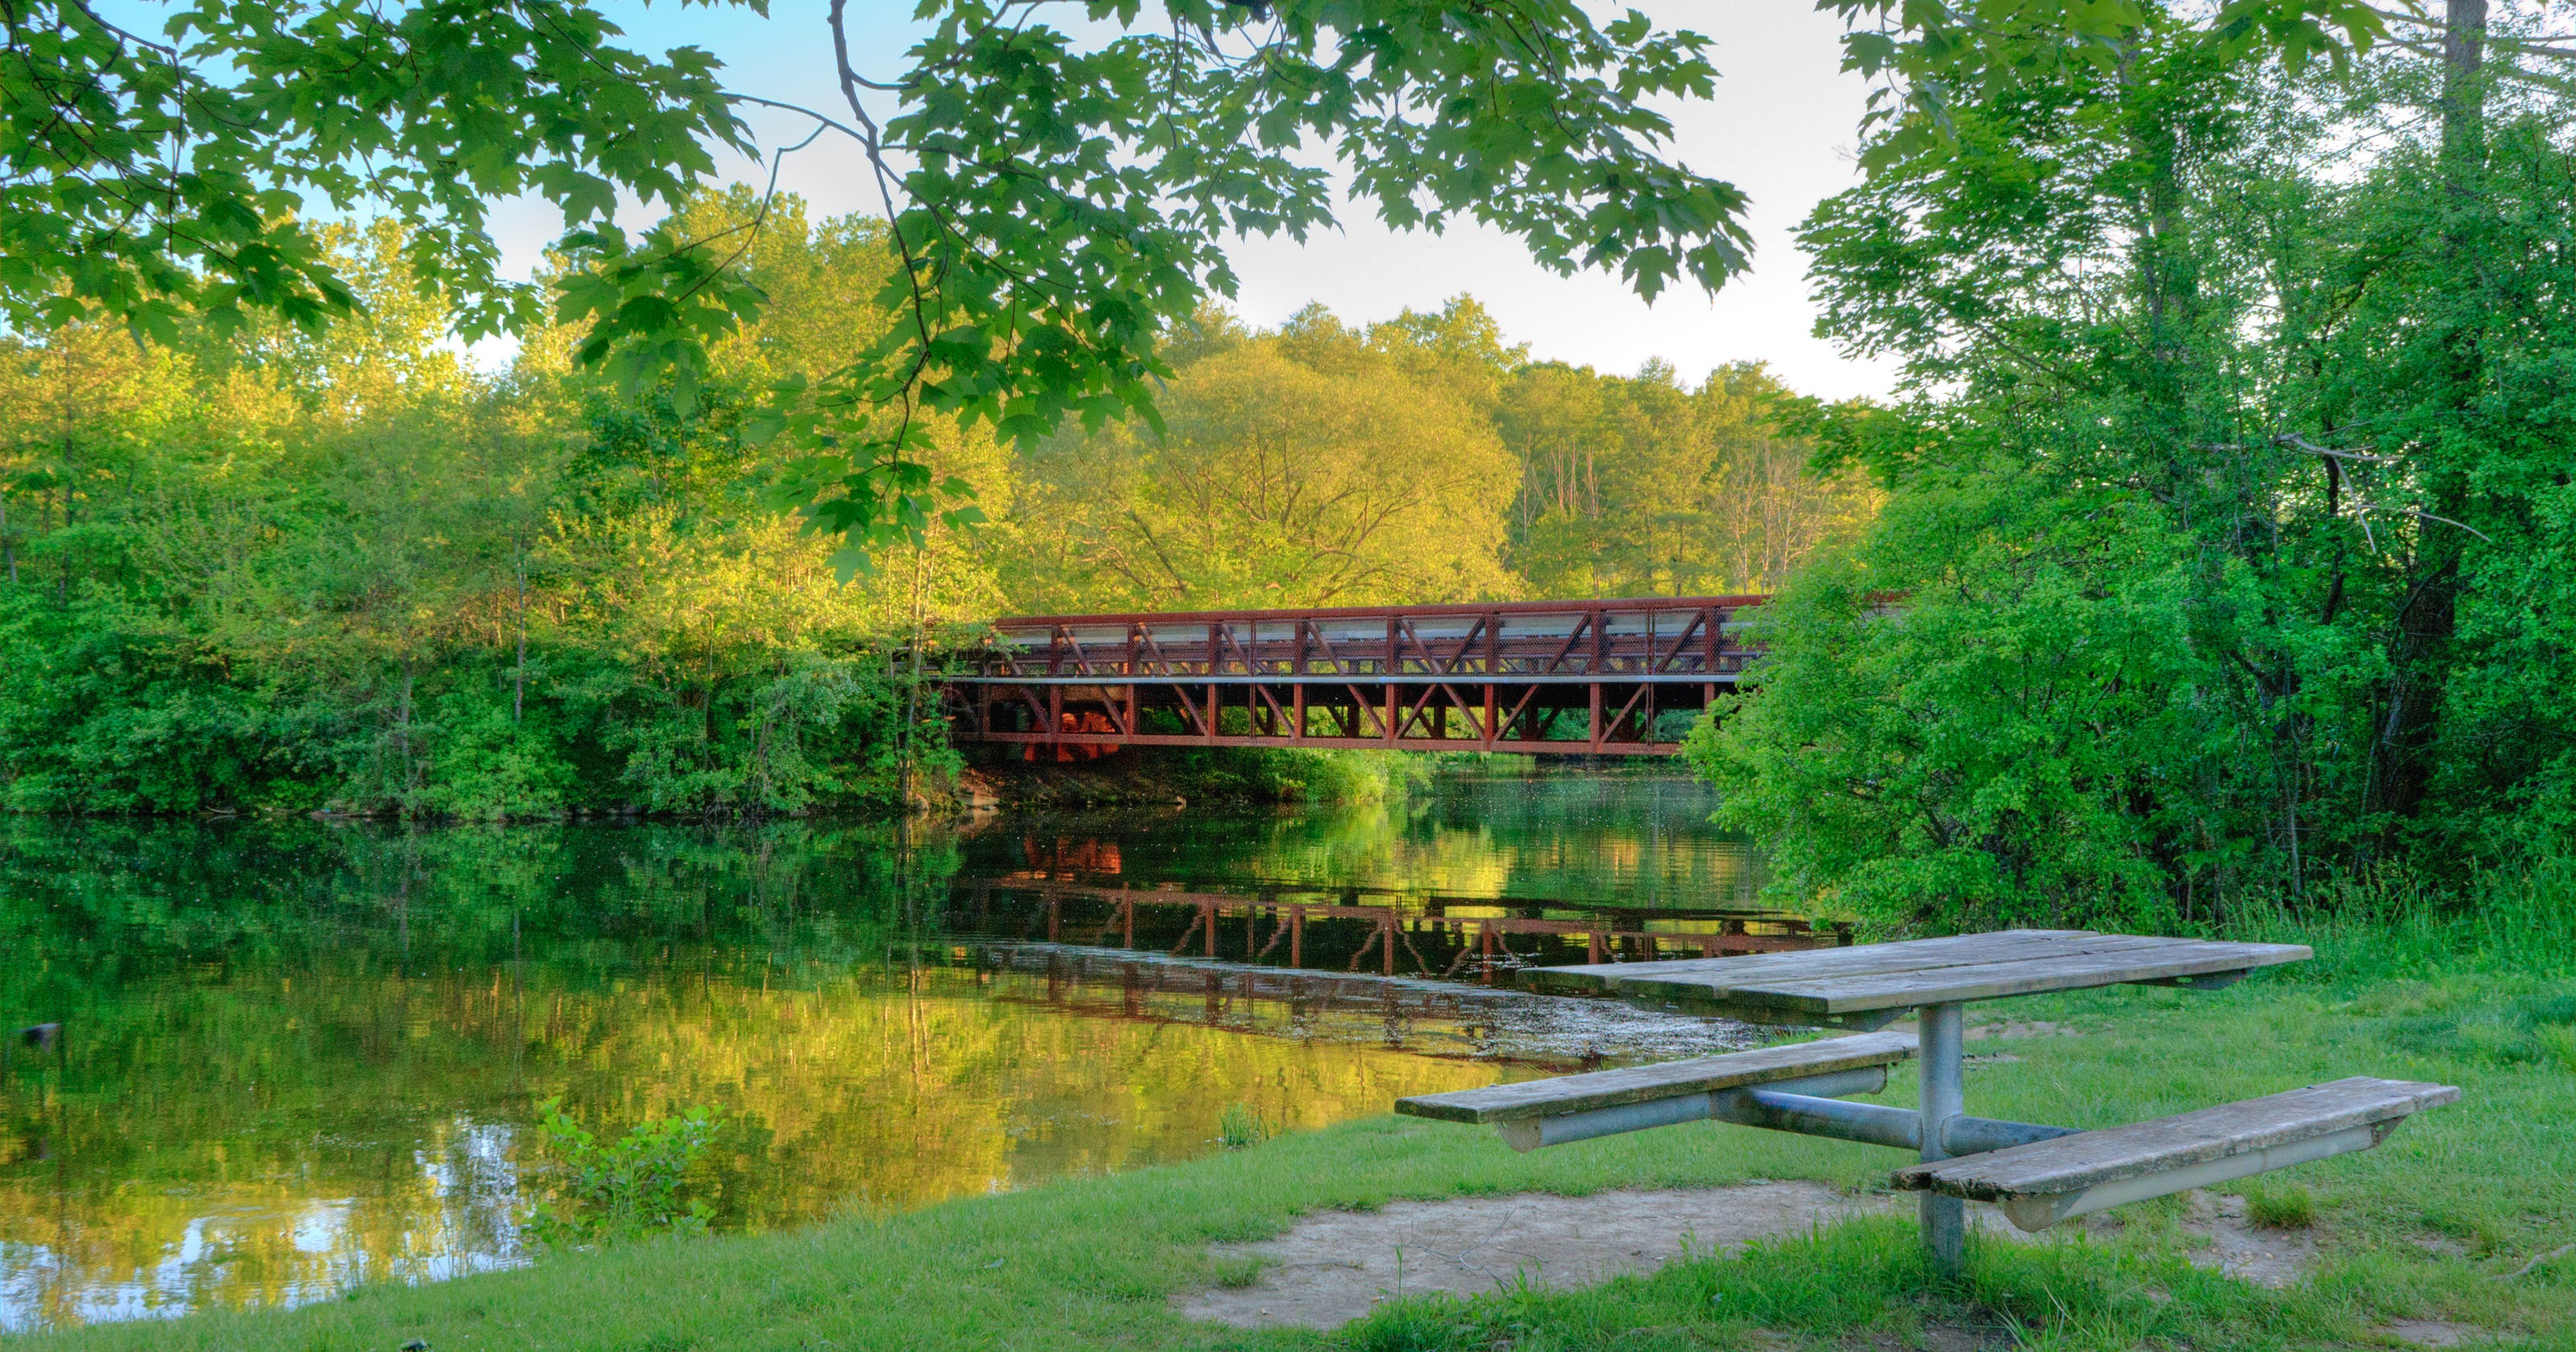 Michigan fishing guide: Where to cast on this summer